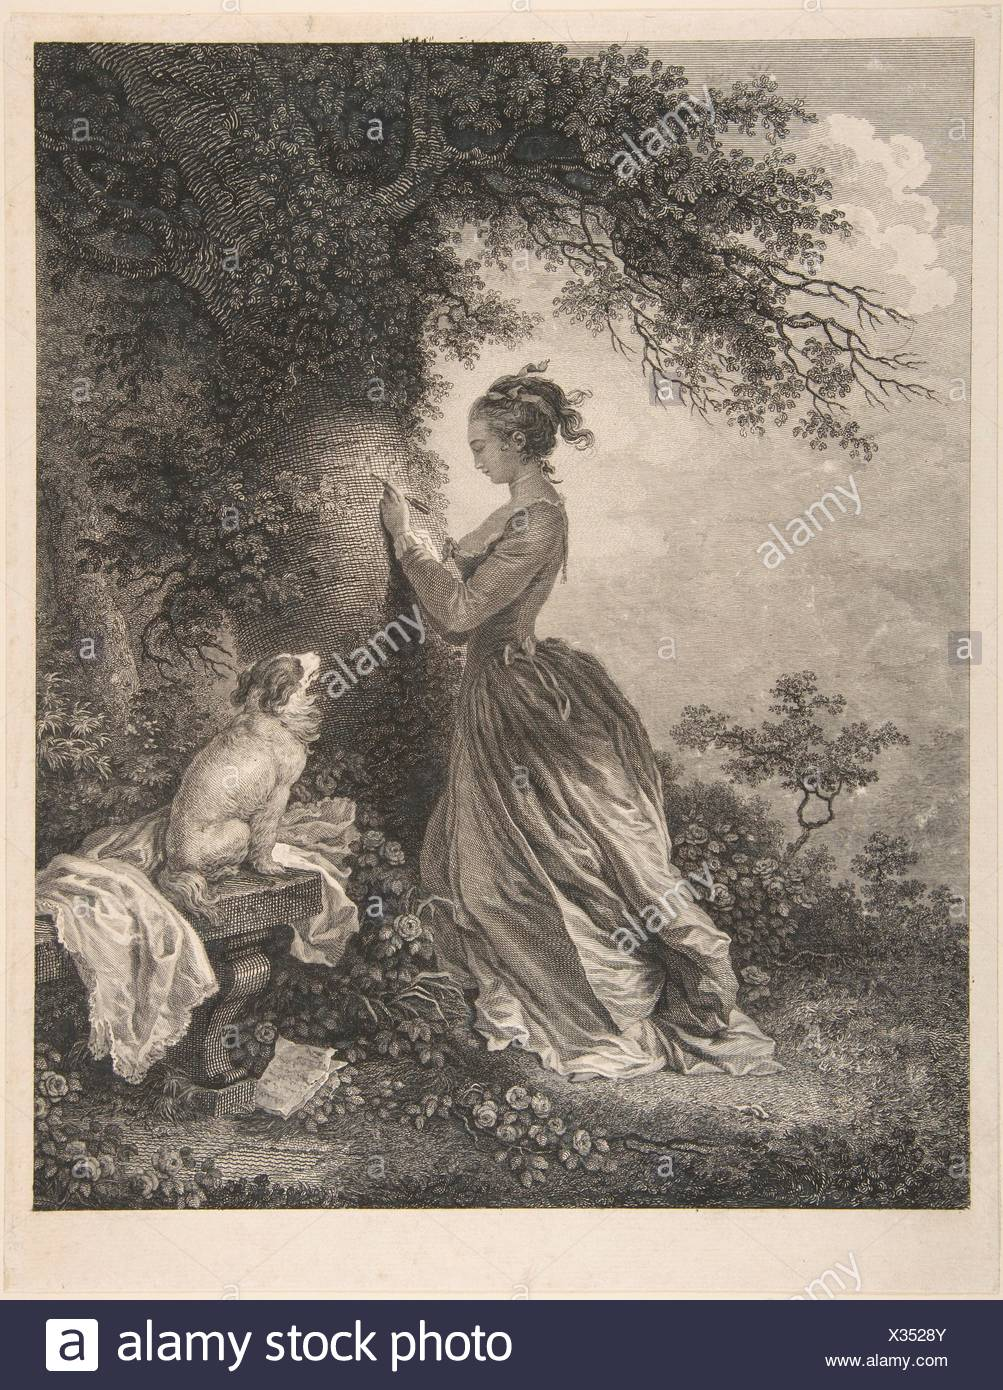 Artist: Nicolas de Launay (French, Paris, 1739-1792); Artist: After Jean  Honoré Fragonard (French, Grasse 1732-1806 Paris); Date: